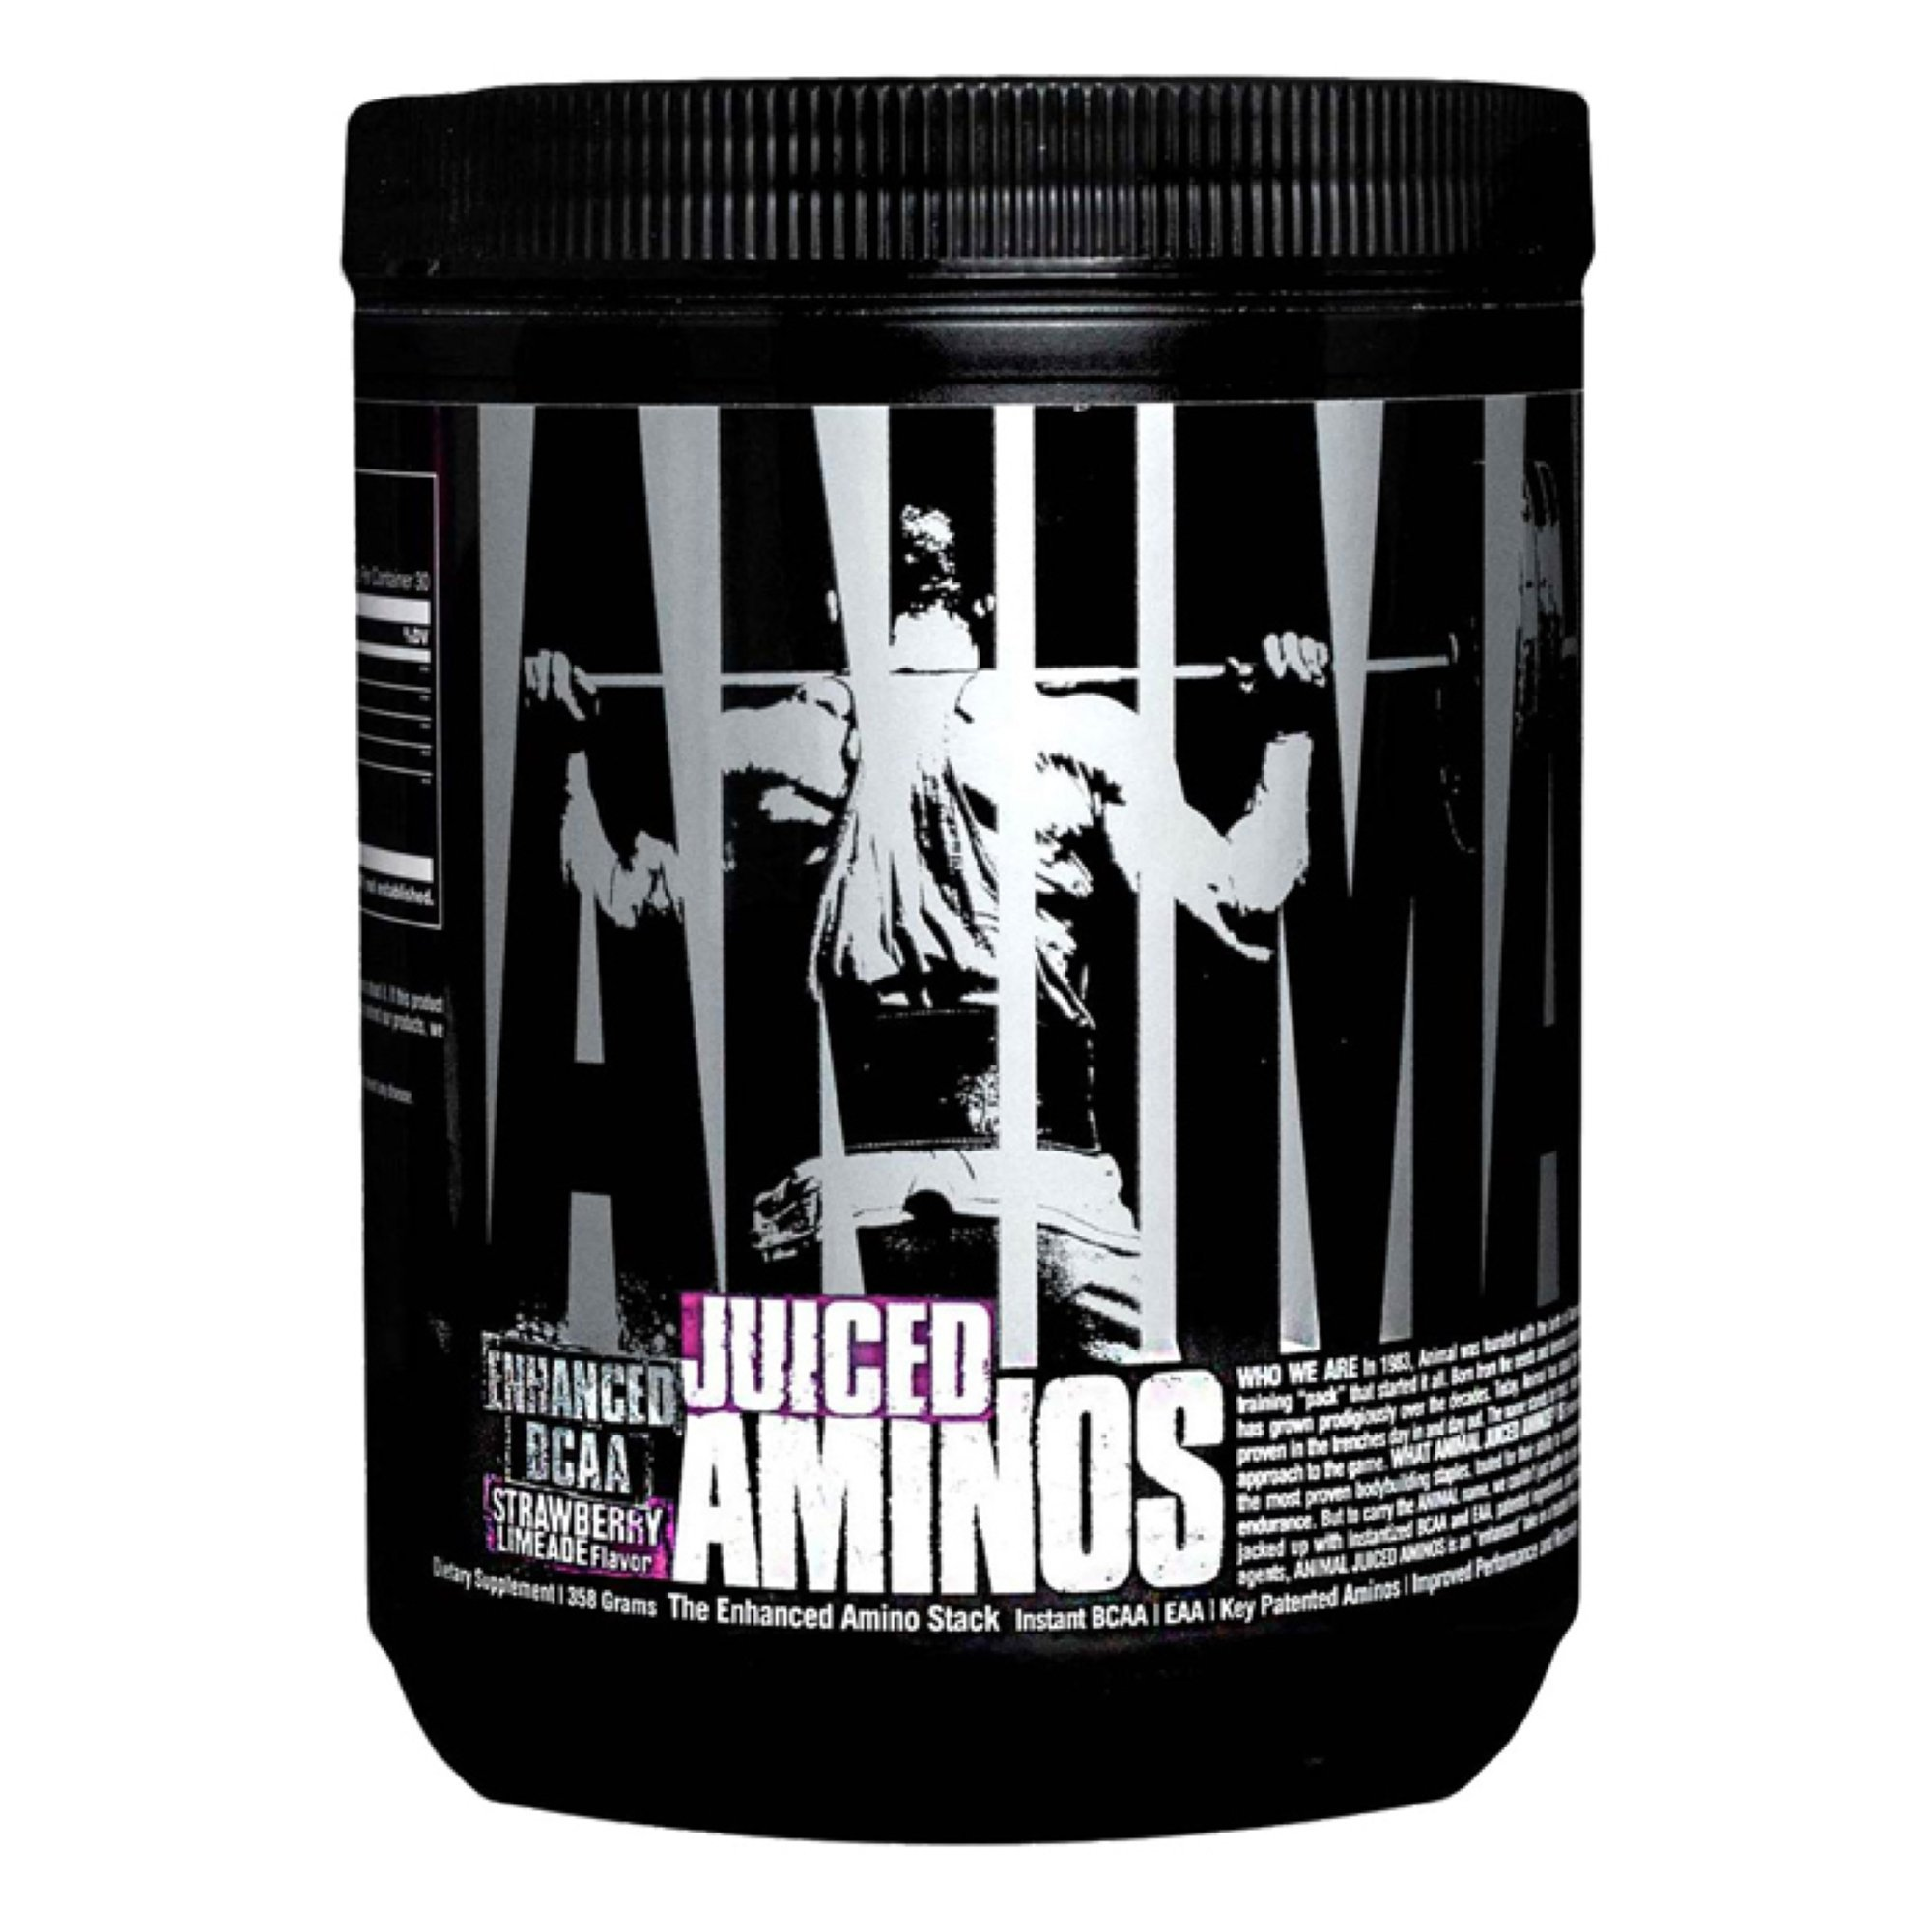 Animal Juiced Aminos - 6g BCAA/EAA Matrix plus 4g Amino Acid Blend for Recovery and Improved Performance - Strawberry Limeade - 30 Servings by Animal